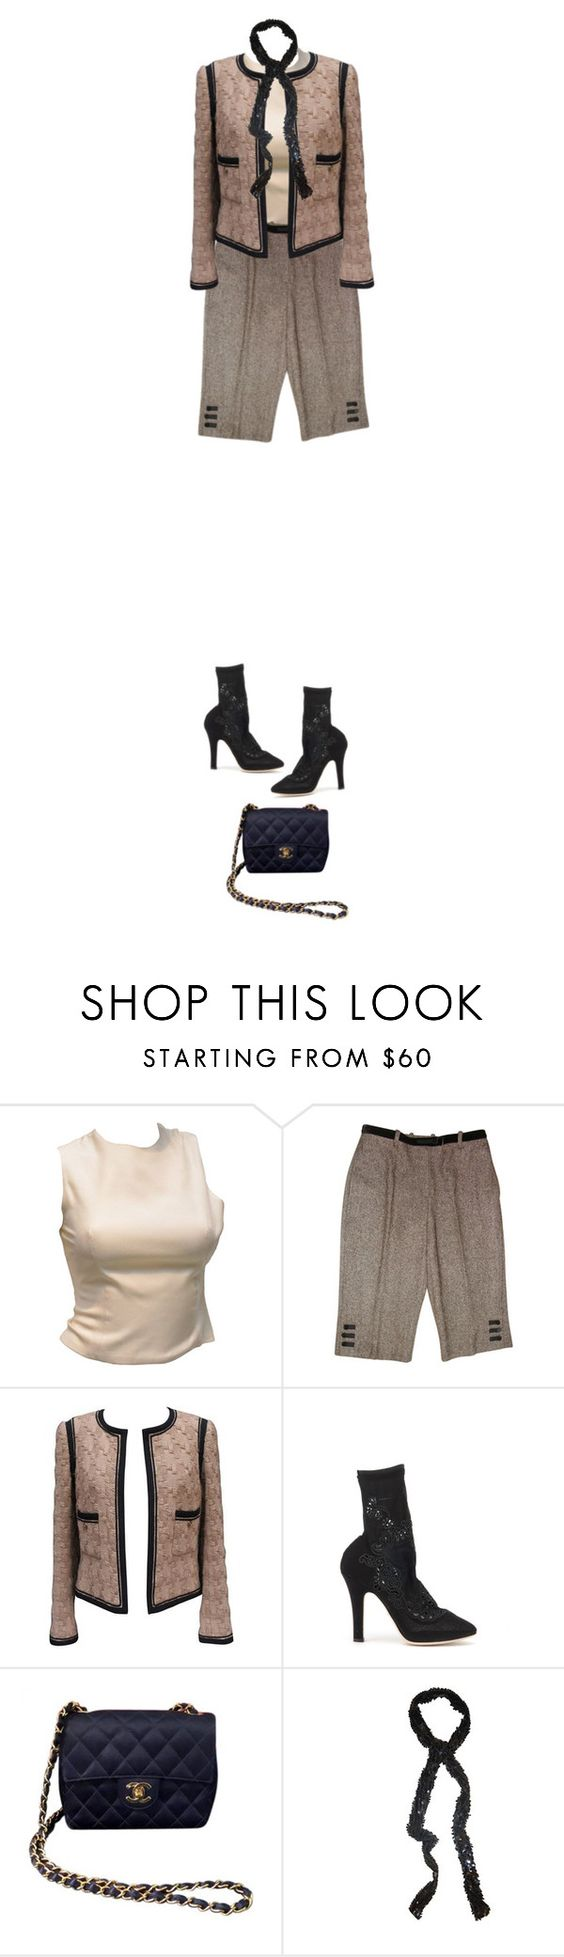 """""""mild weather."""" by sharplilteeth ❤ liked on Polyvore featuring Versace, Lanvin, Karl Lagerfeld, Dolce&Gabbana, Chanel, Aziina and spring2016"""